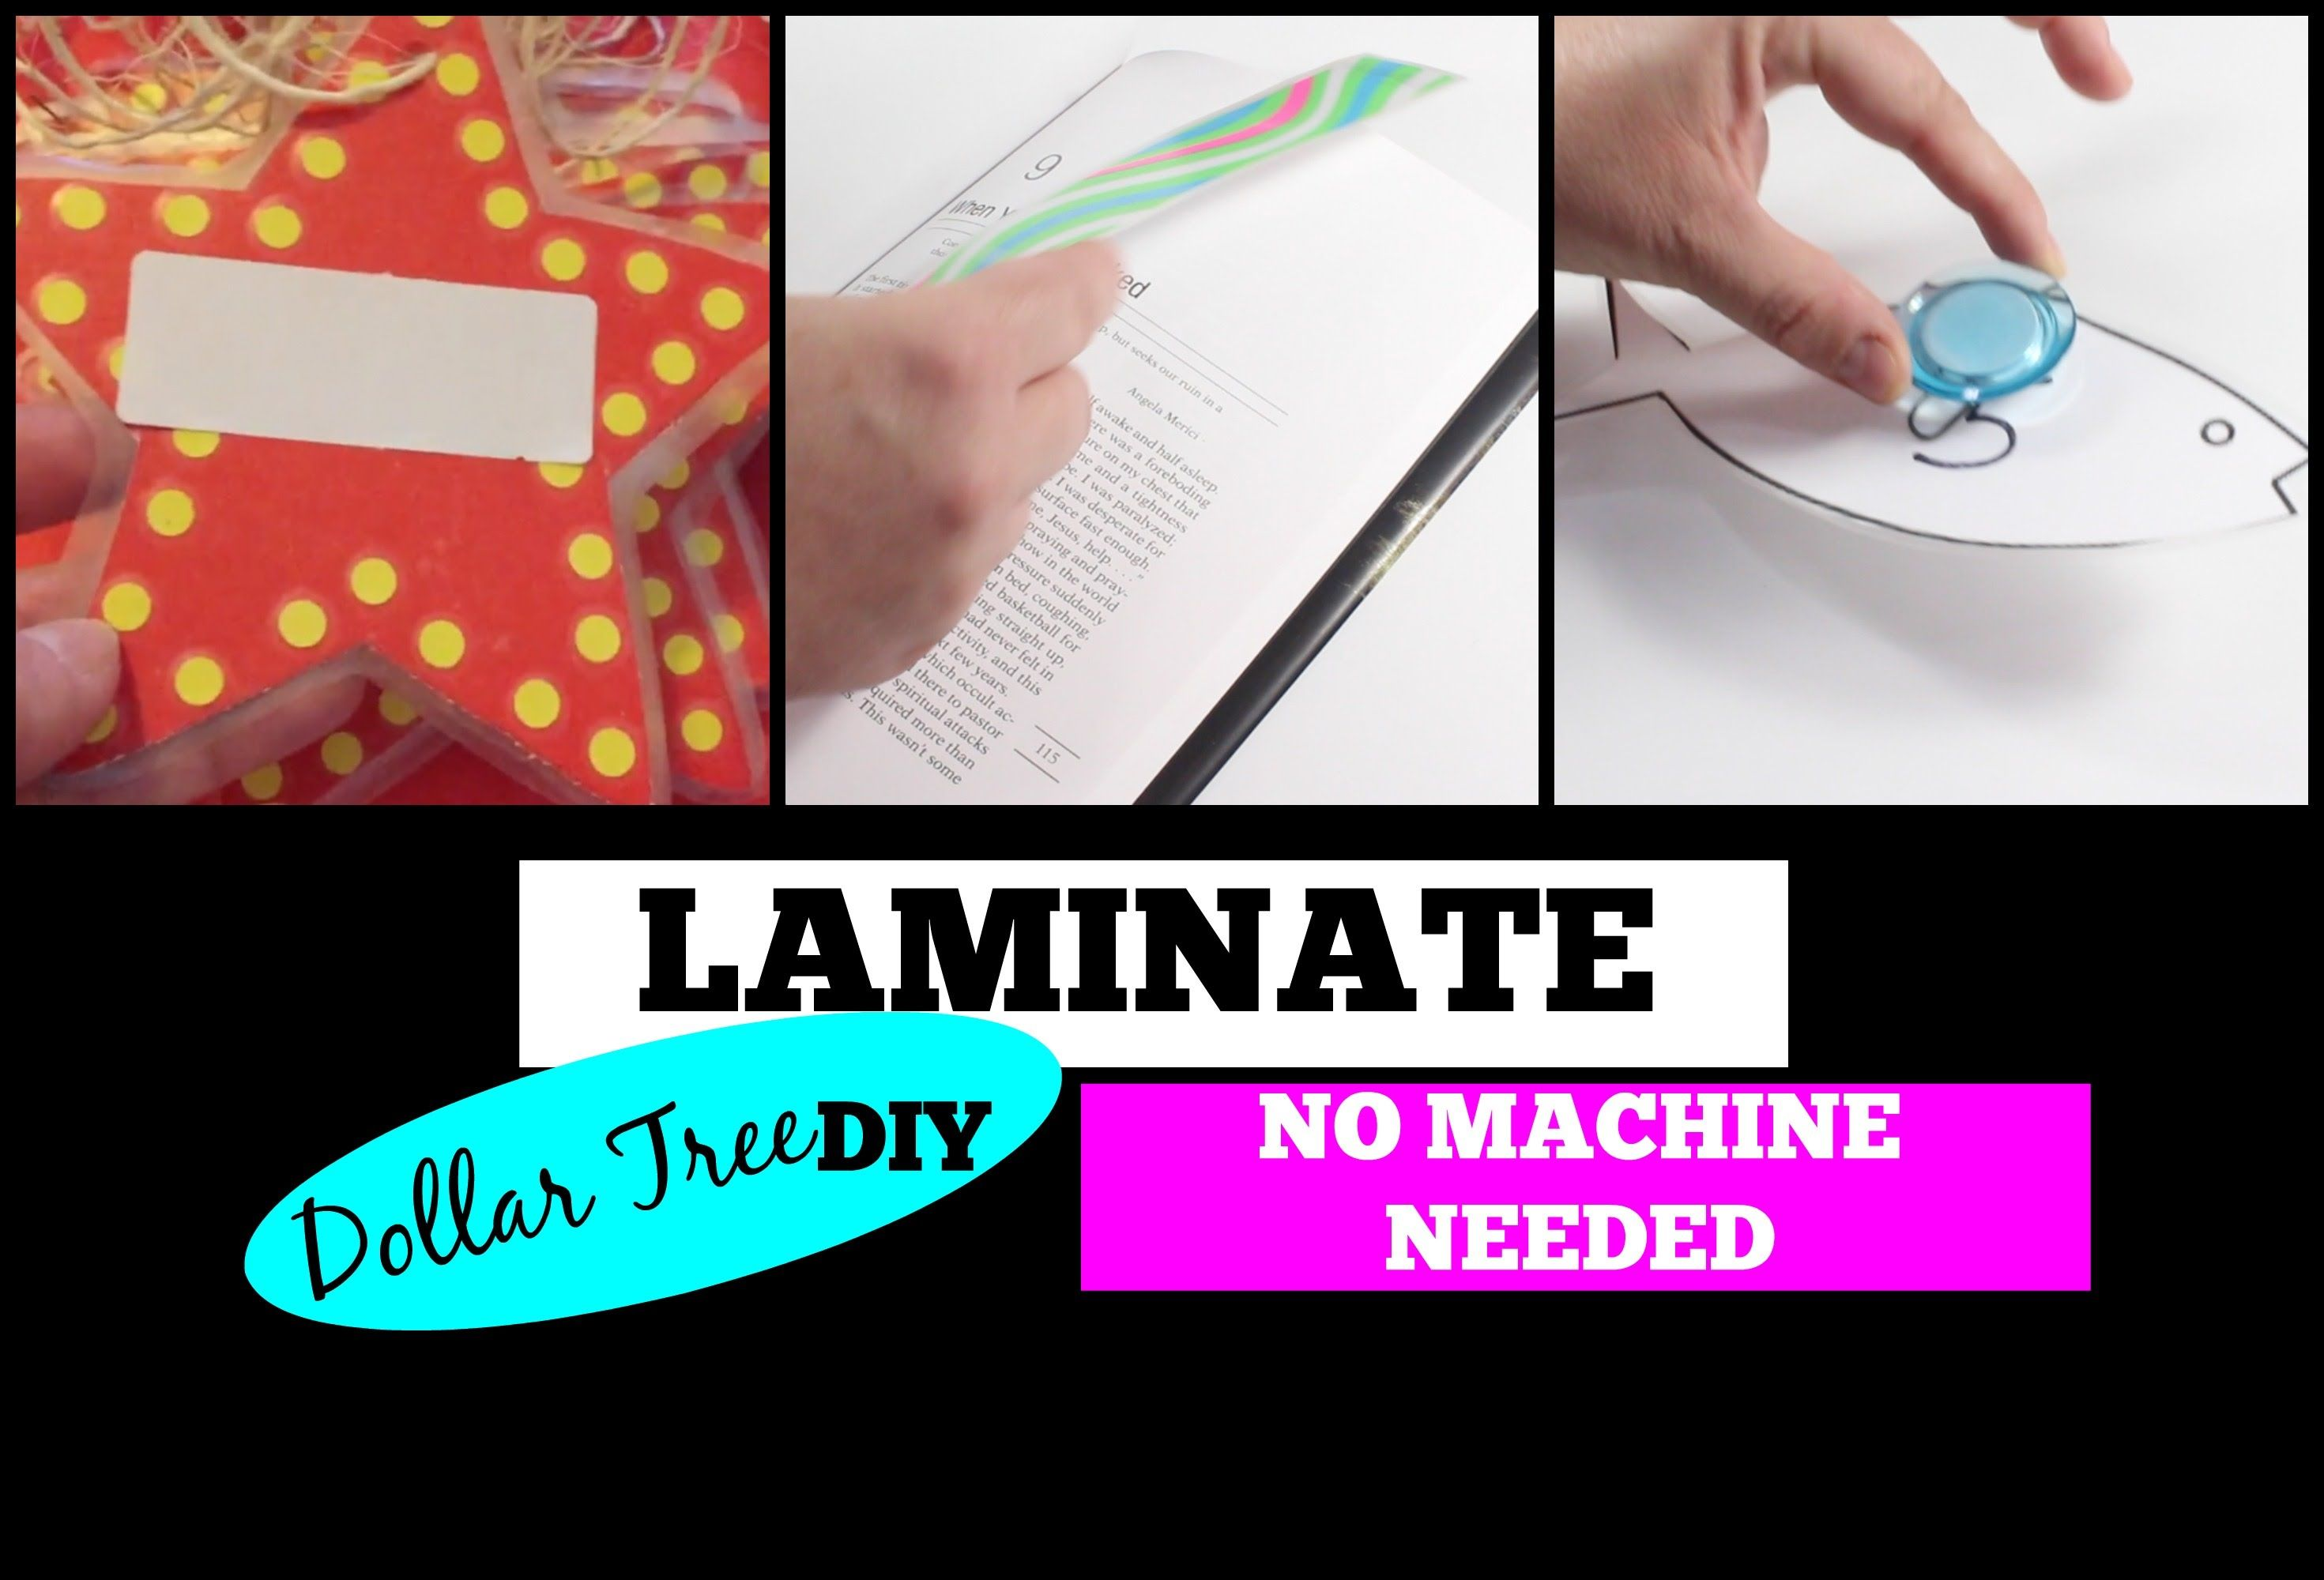 How To Laminate Cards Id S Photos Anything With An Iron When I Have Free Time Easy Diy Projects Laminating Paper